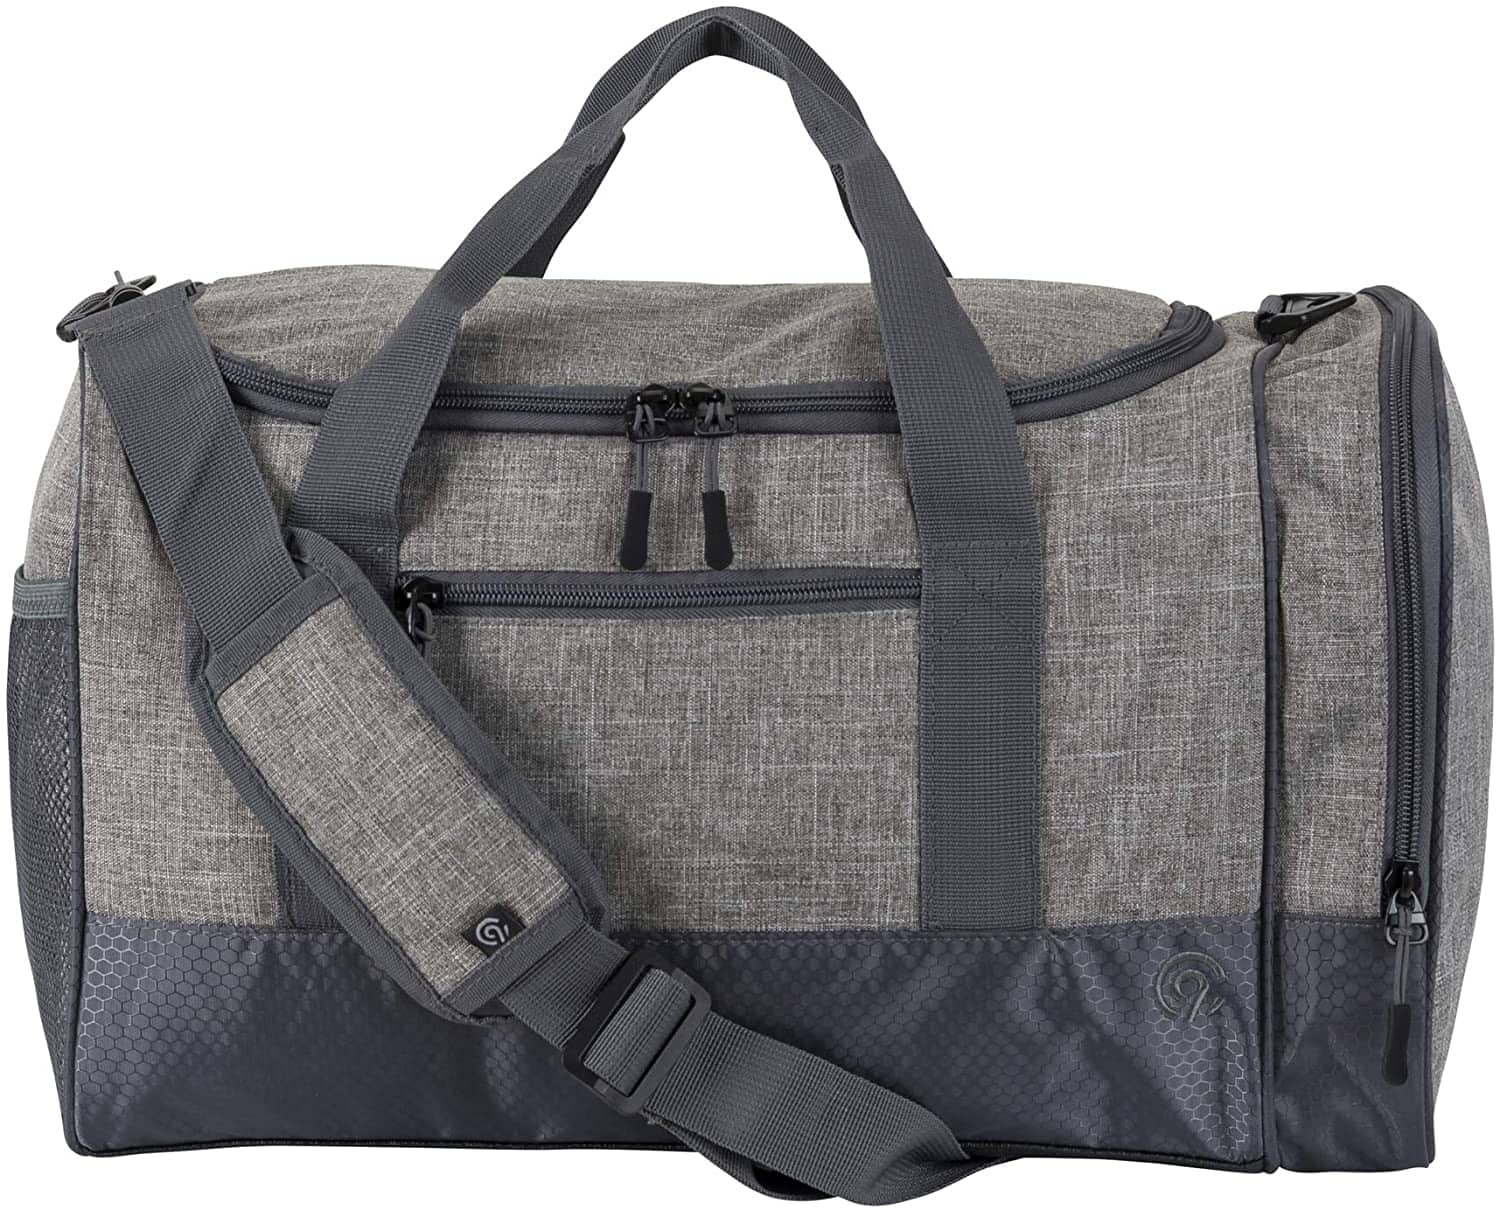 C9 Champion Fitness Duffel $8 + free shjipping w/ Prime or on orders over $25